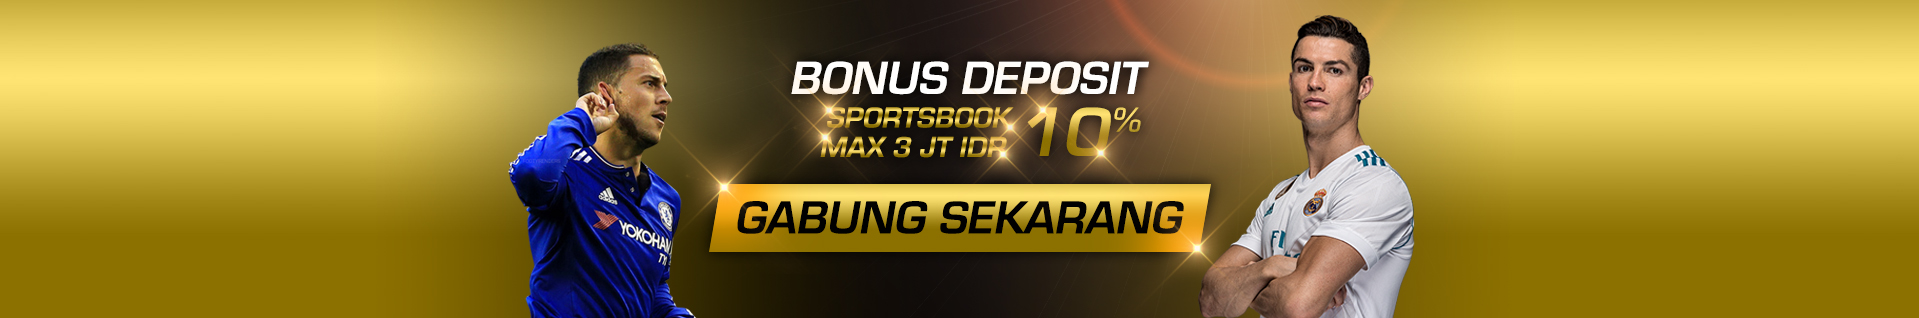 SPORTSBOOK FIRST DEPO 10%